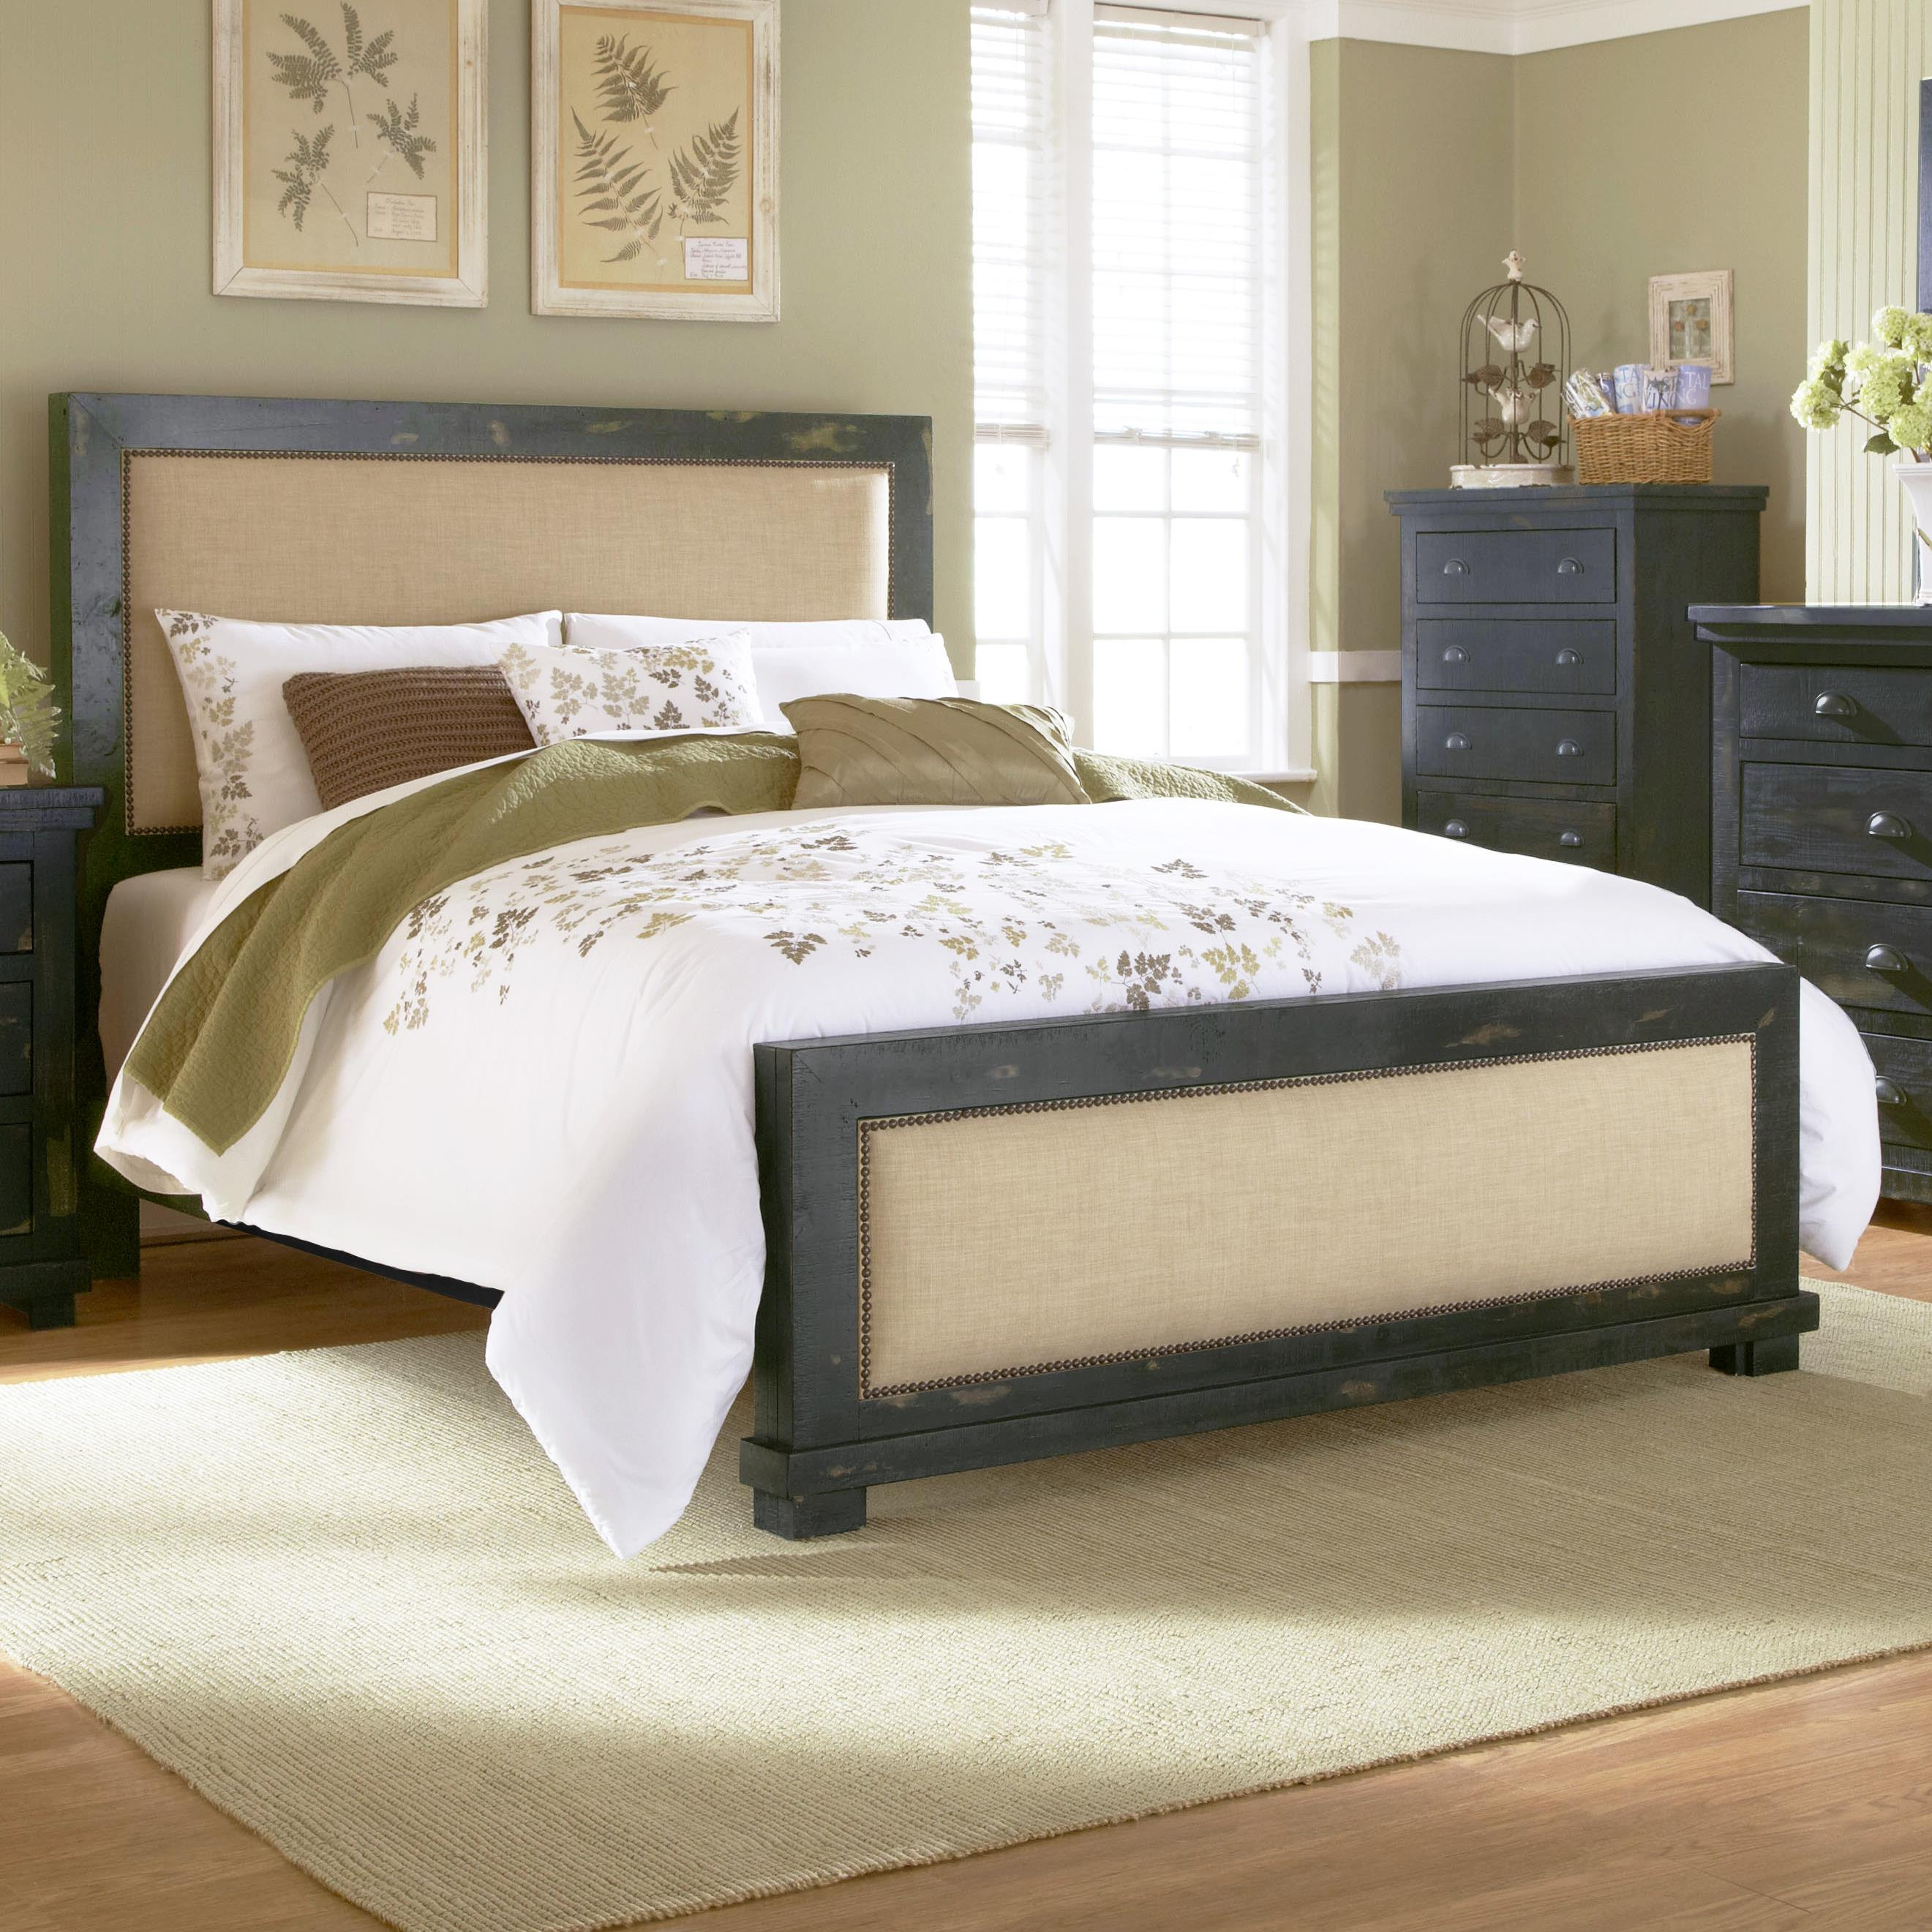 Willow Queen Upholstered Bed by Progressive Furniture at Simply Home by Lindy's